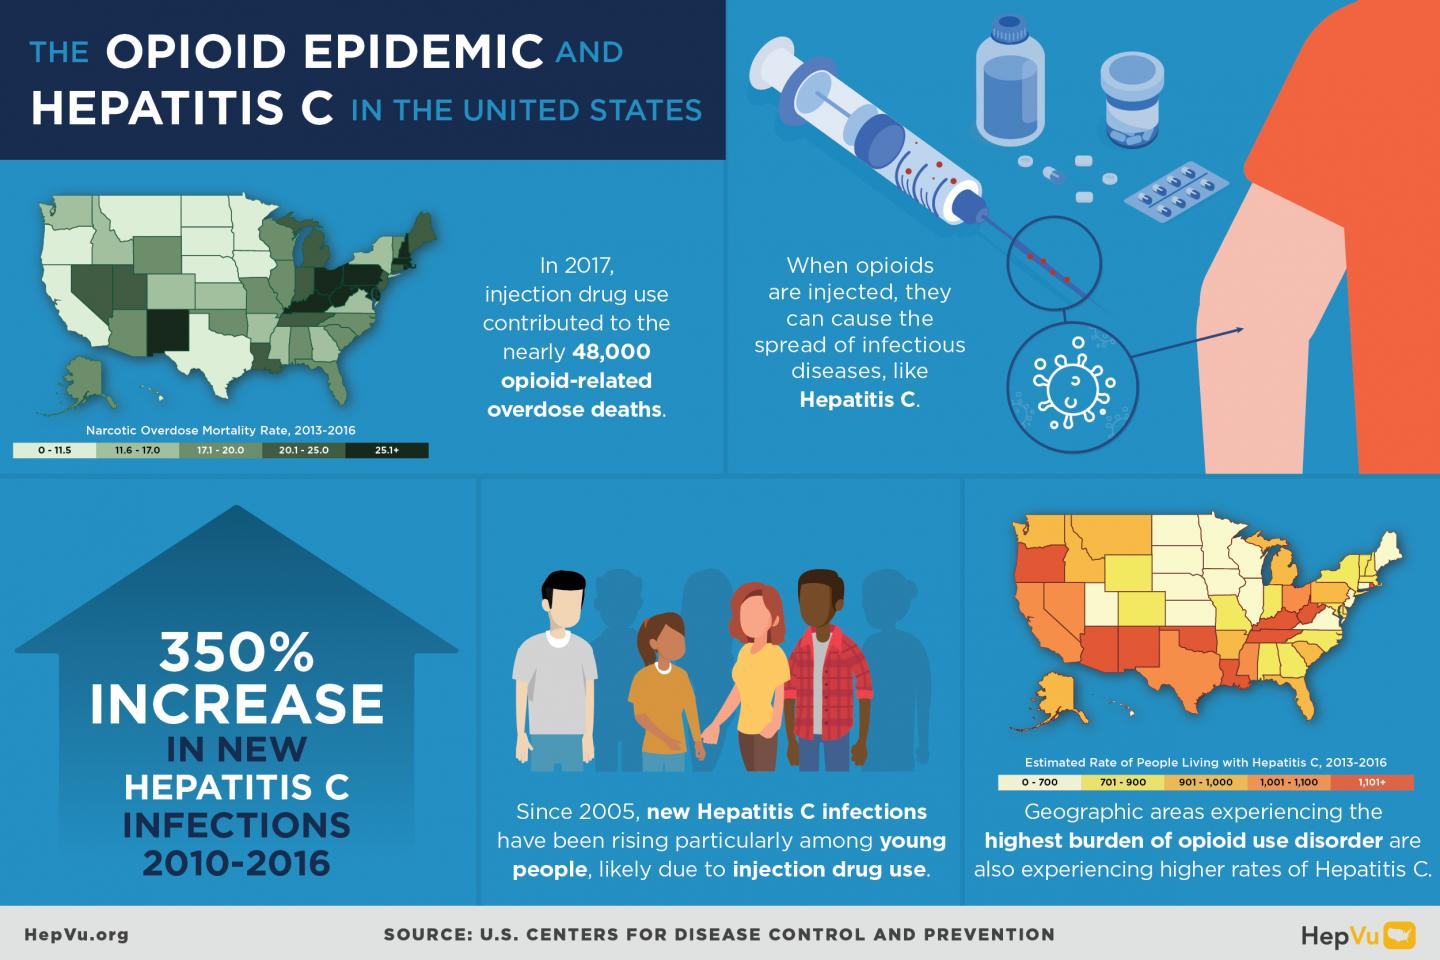 The Opioid Epidemic and Hepatitis C in the US